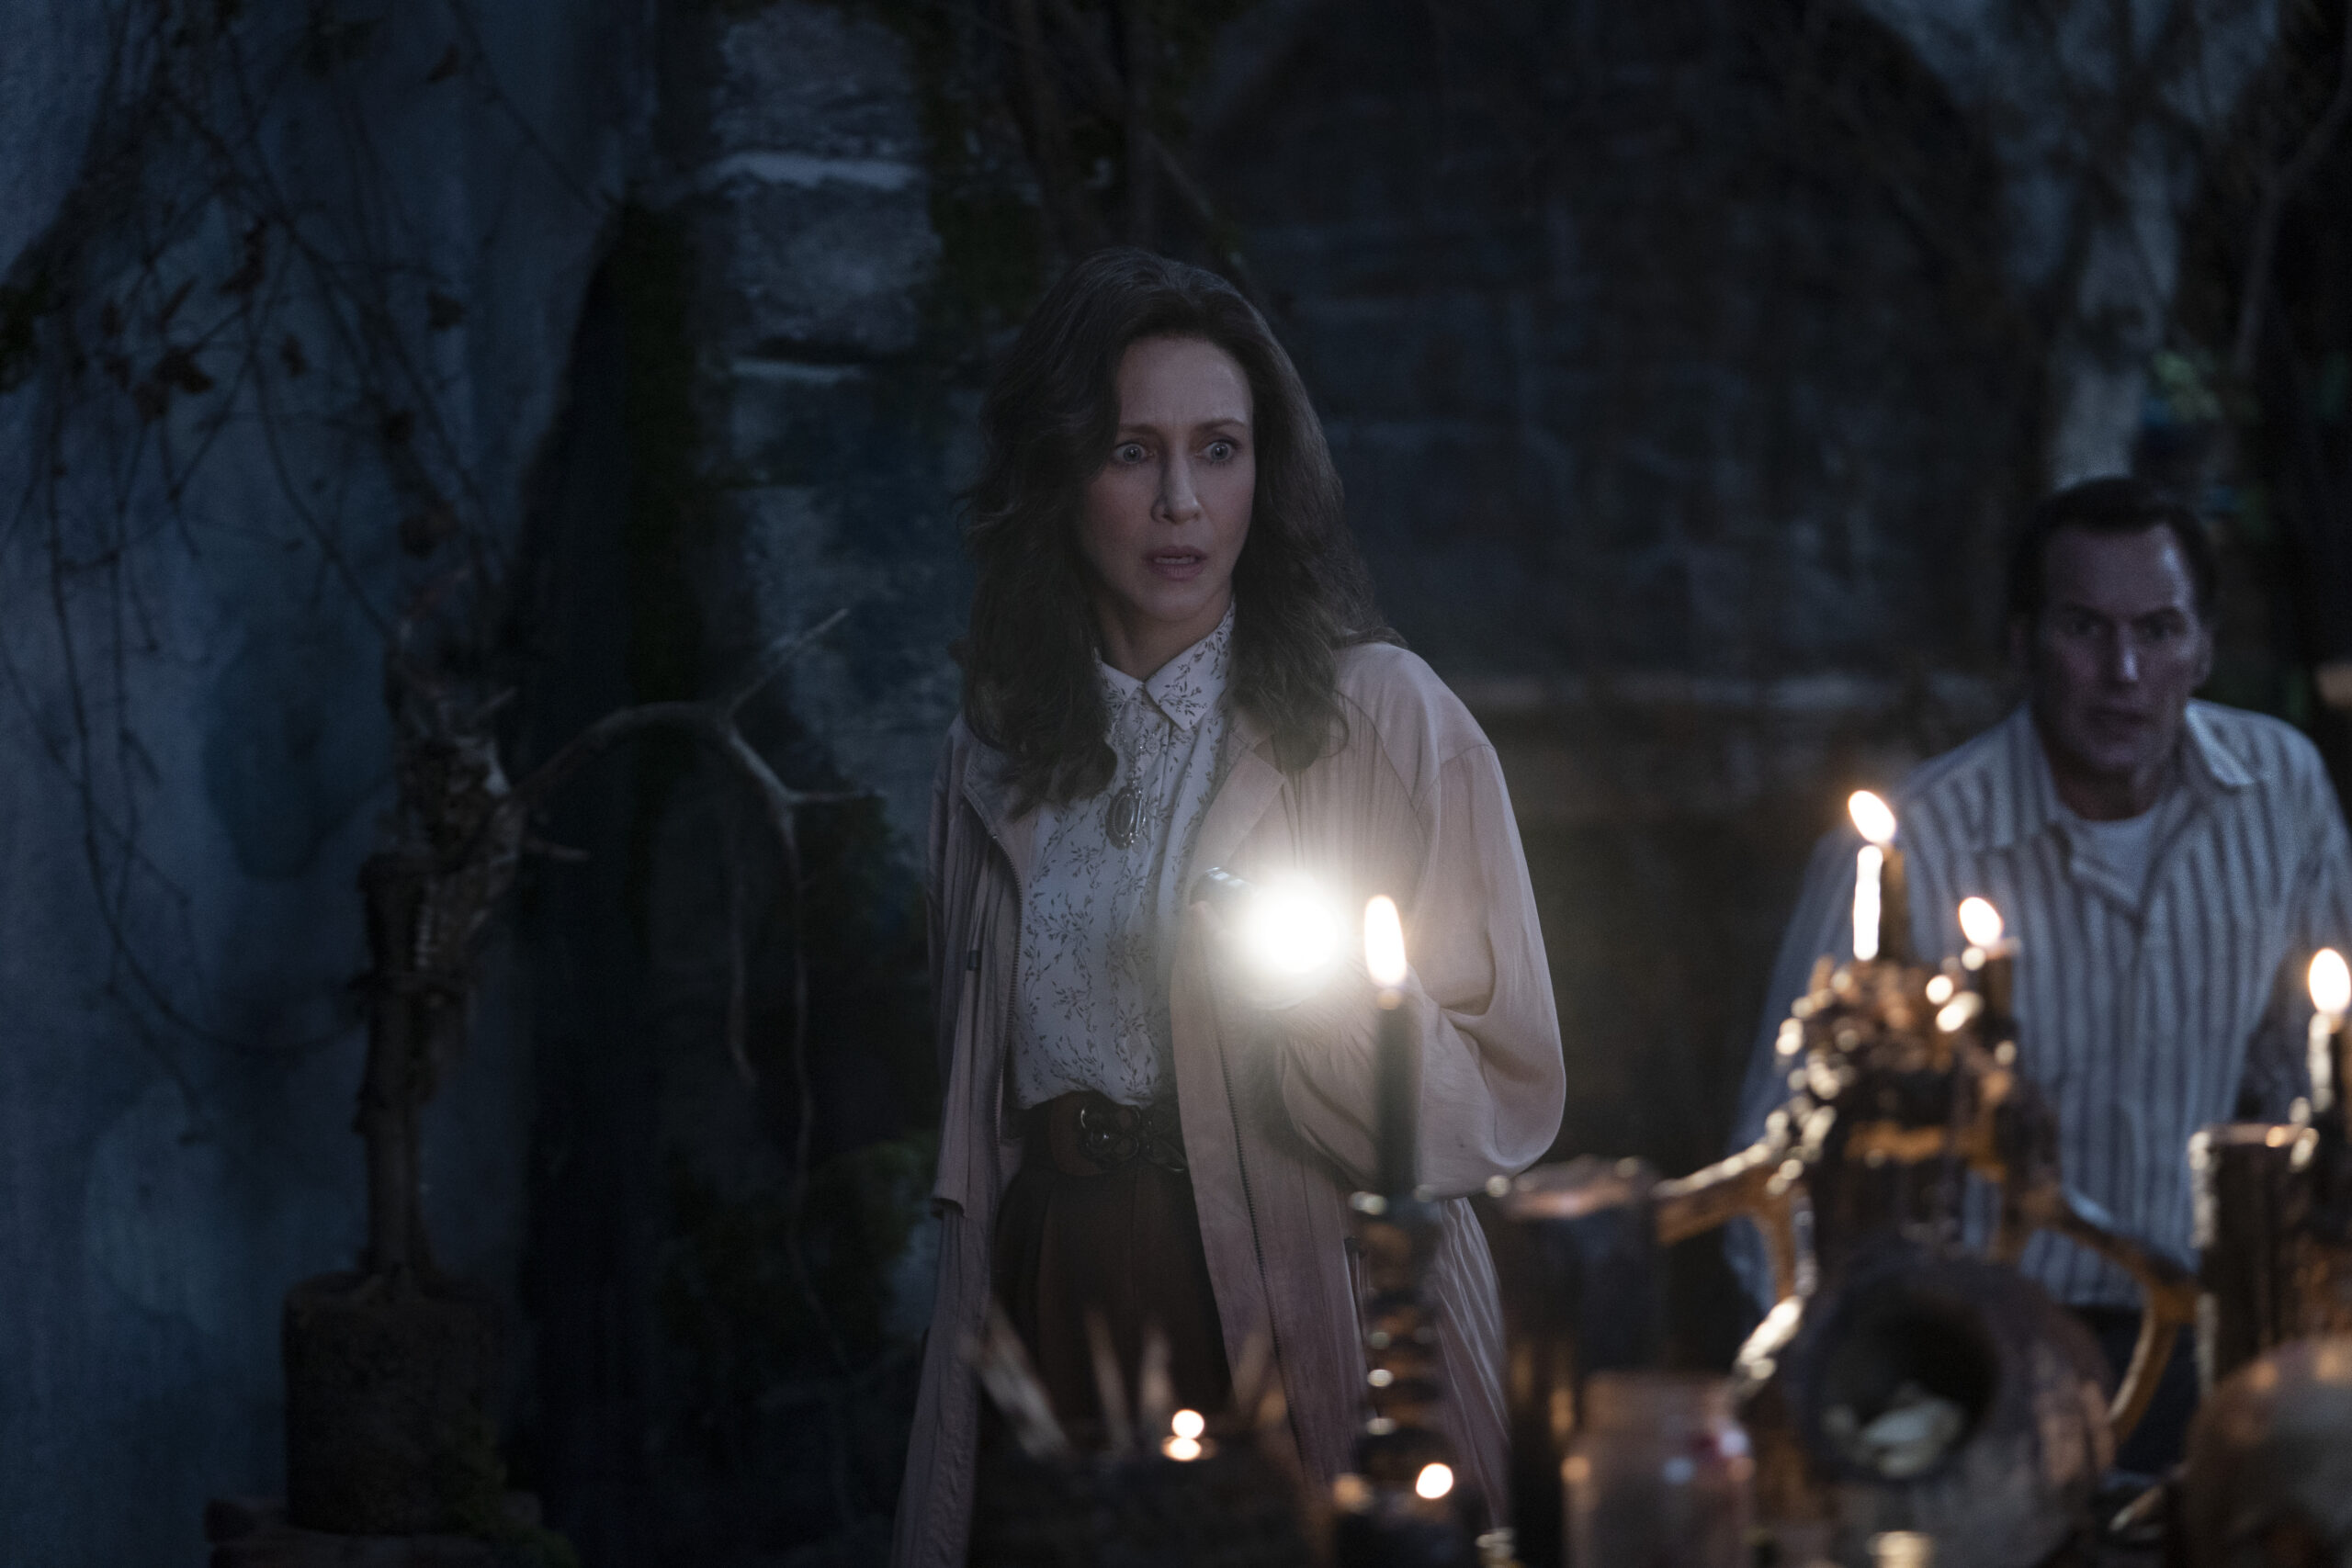 The Conjuring: The Devil Made Me Do Review